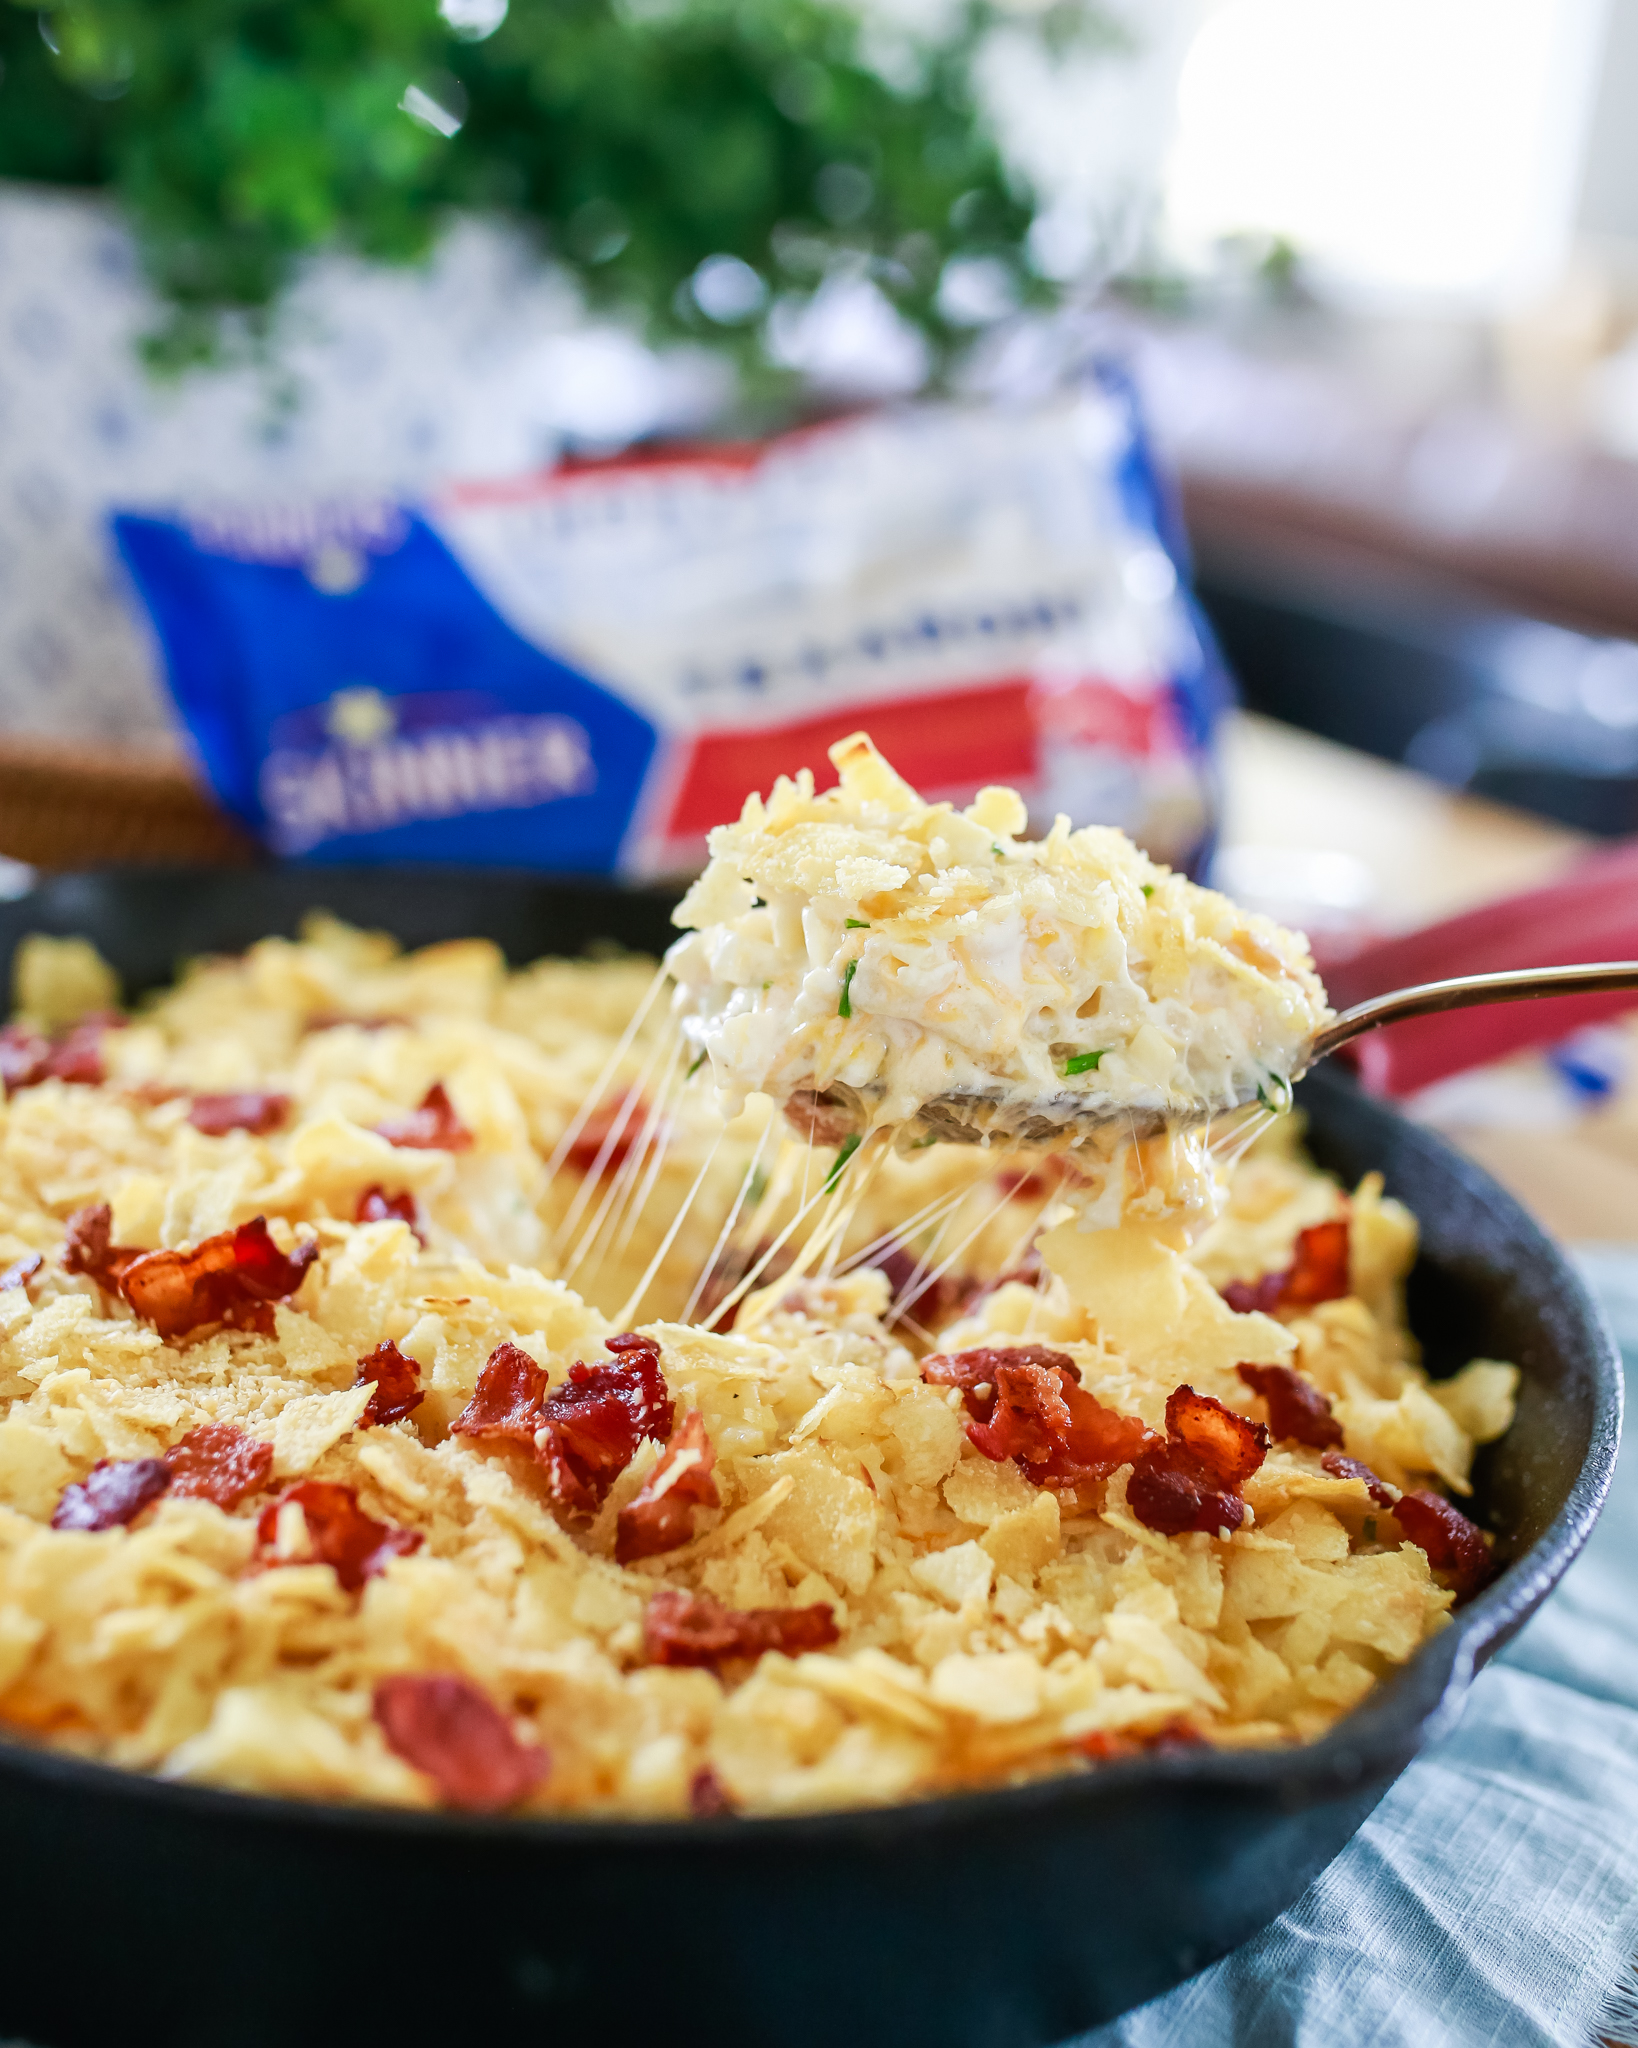 Loaded with cheese, sour cream and bacon, this yummy baked pasta is topped with a potato chip and Parmesan crust.